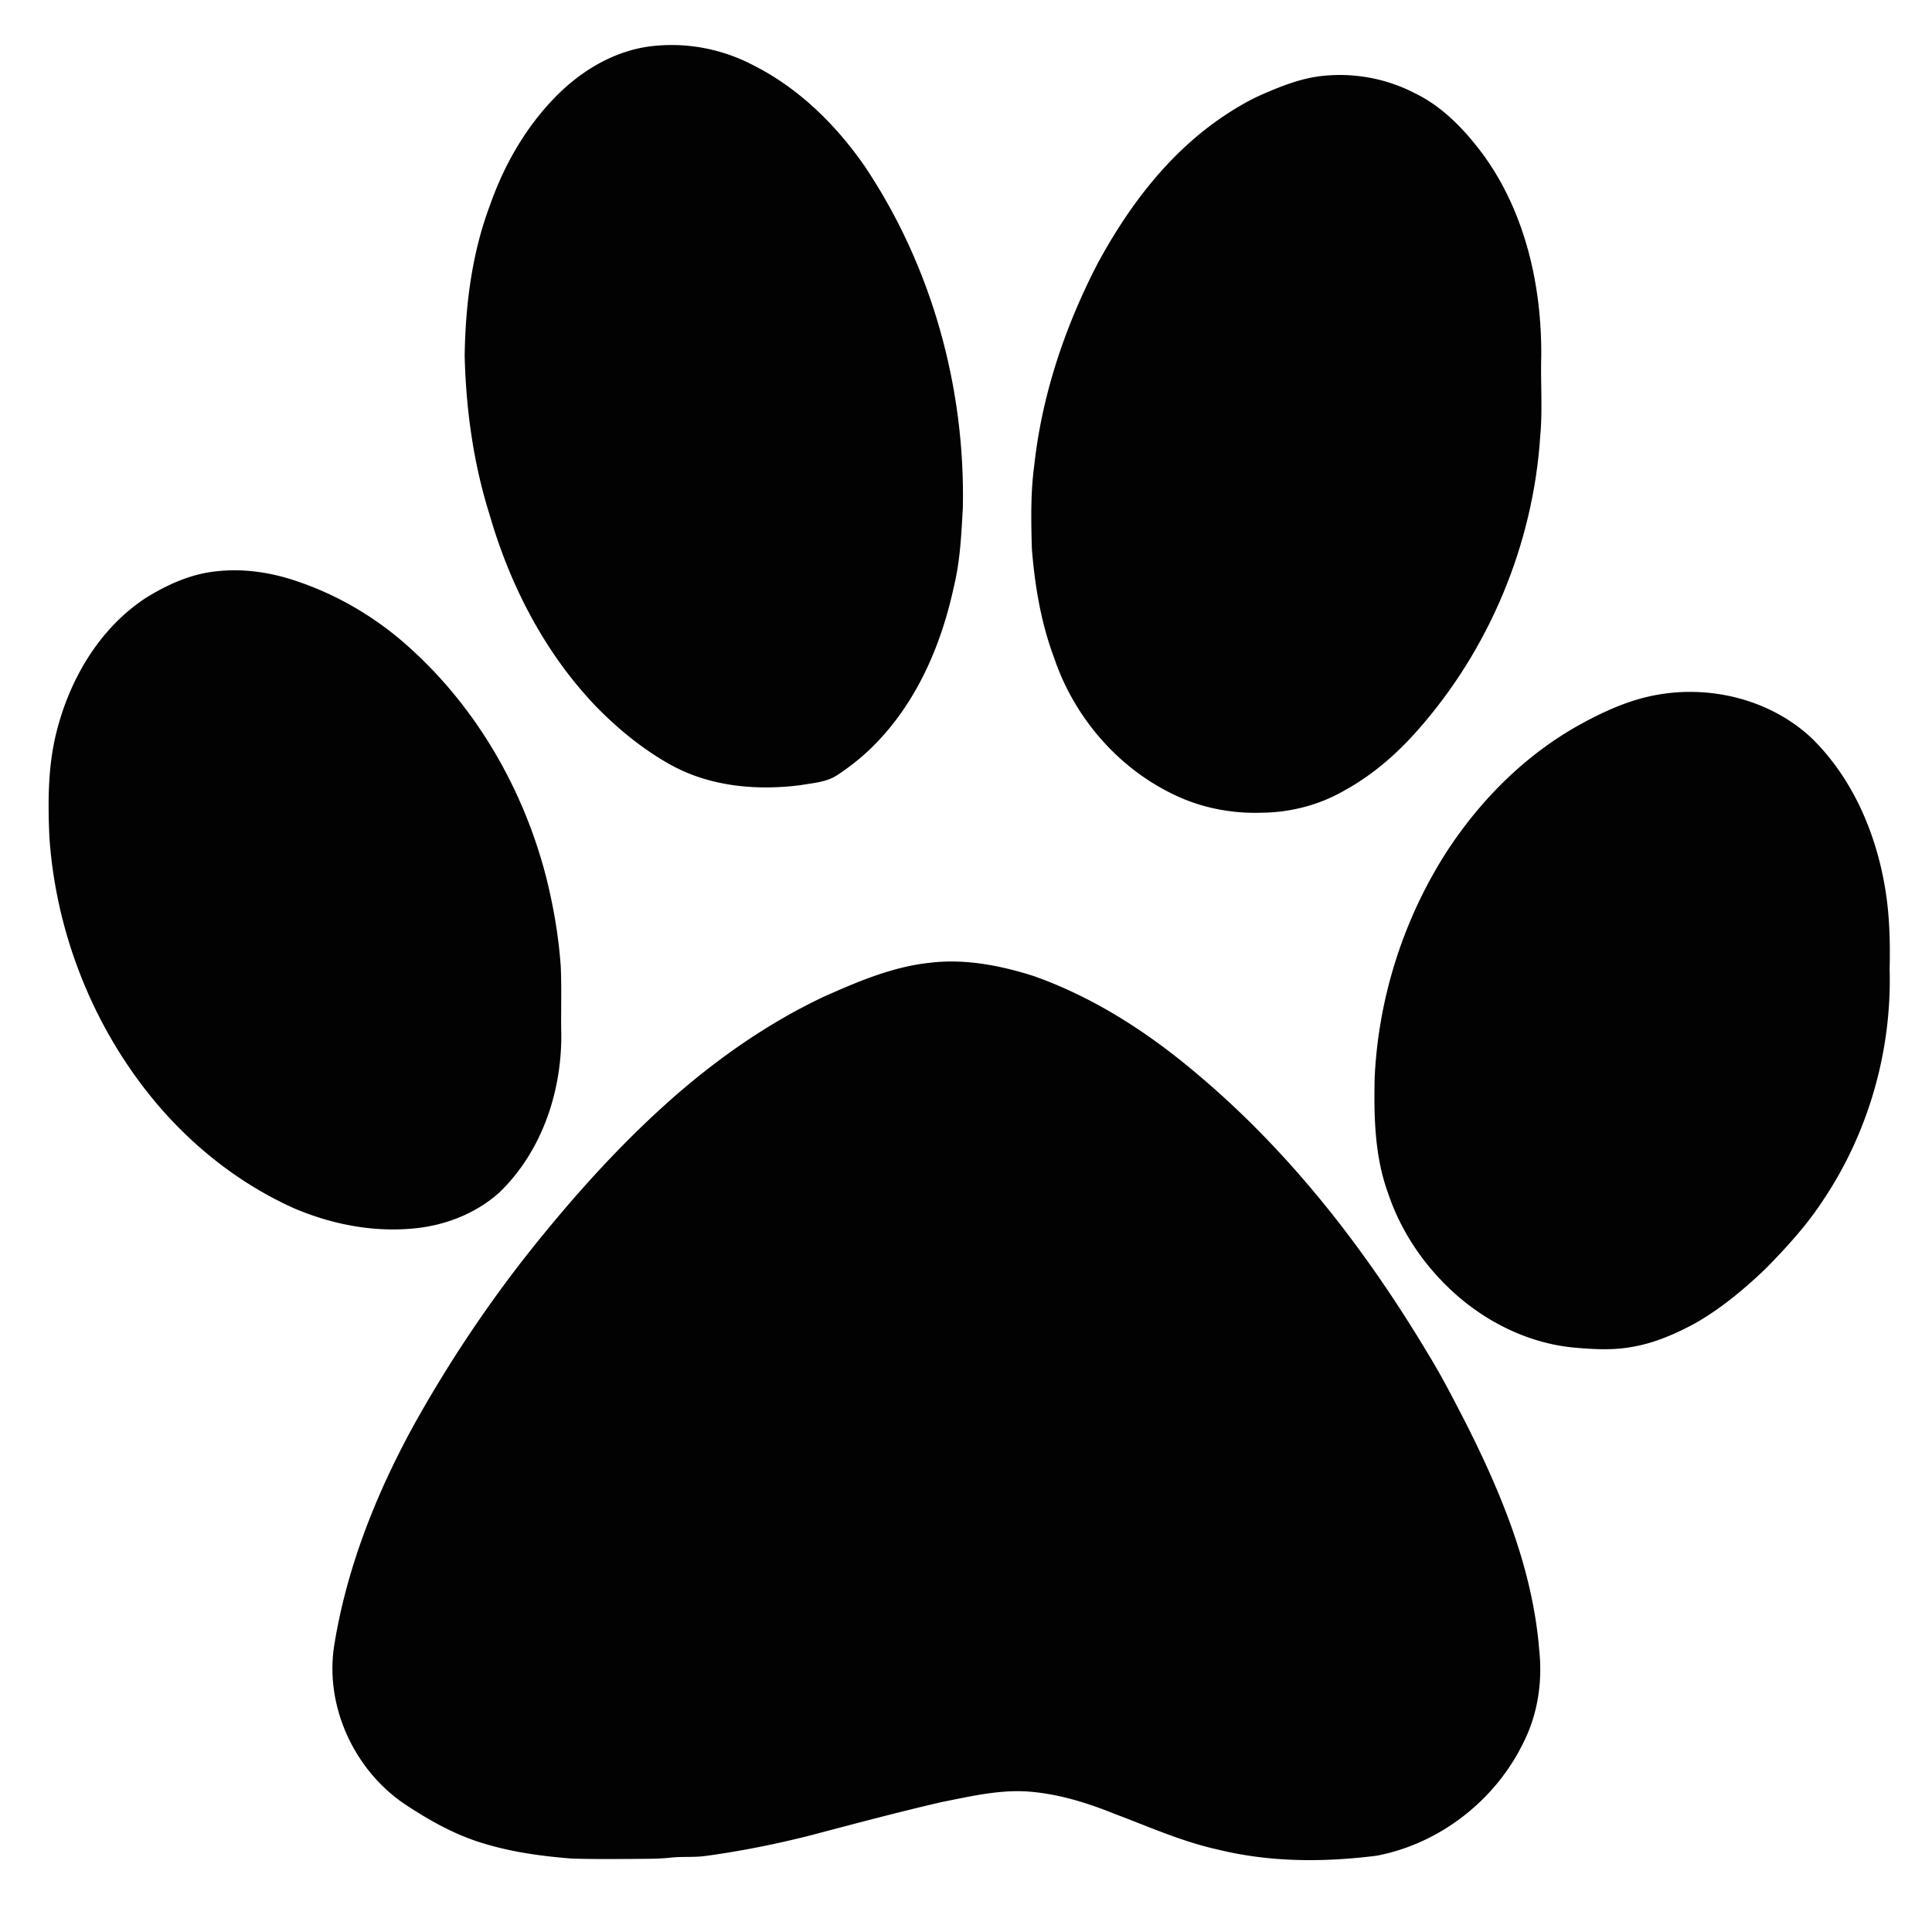 Dog paw clipart png image freeuse stock Dog Paw Cougar Clip art - paw 2500*2500 transprent Png Free Download ... image freeuse stock